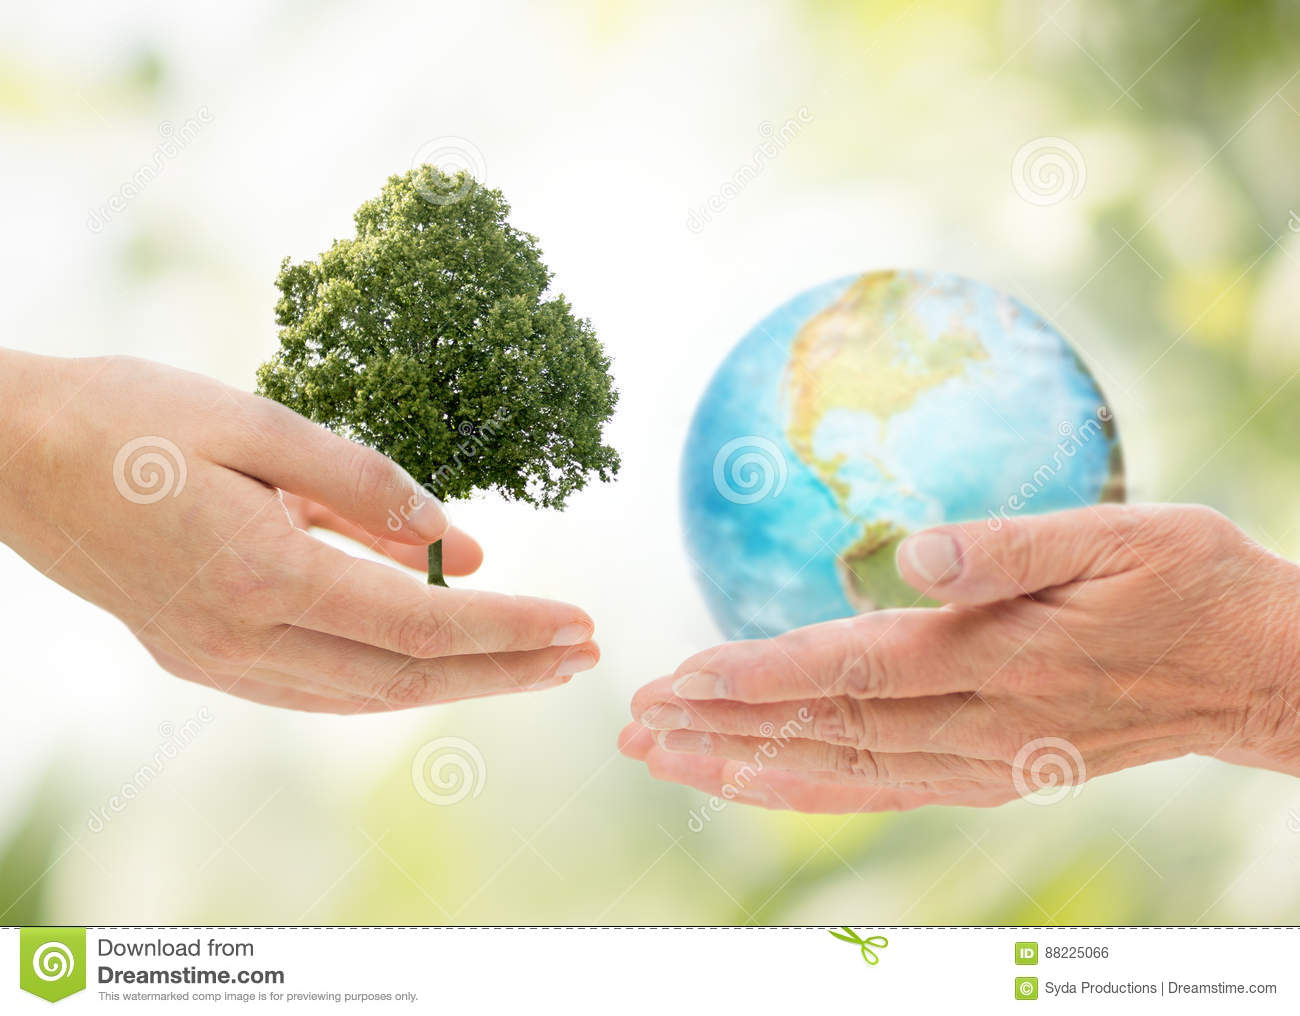 Hands holding green oak tree and earth planet